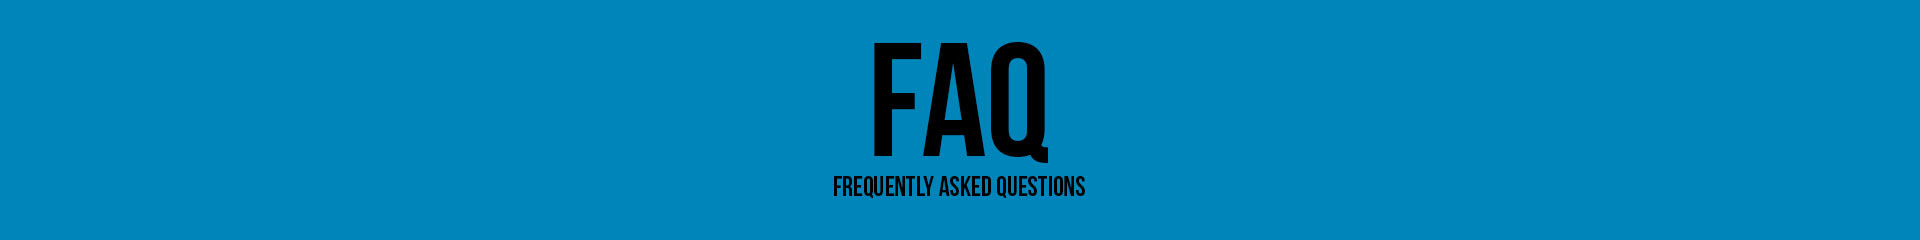 VPN Questions and Answers